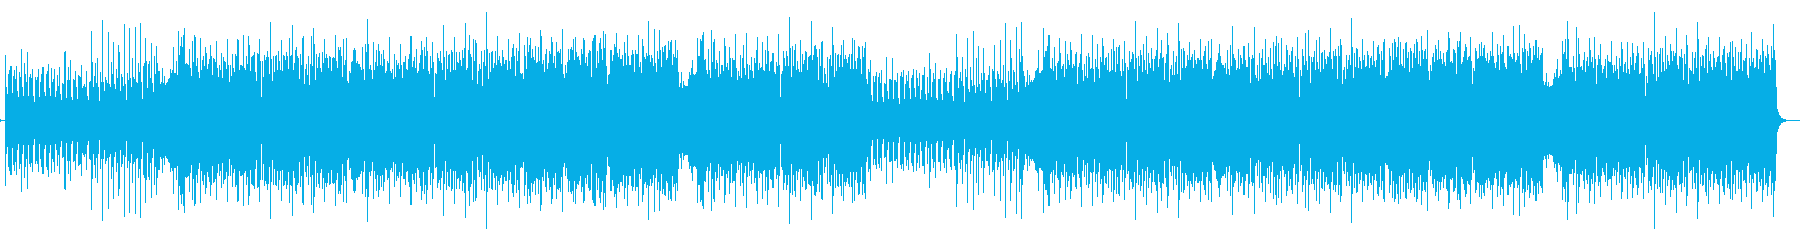 Light, night, comical, suspicious, eerie's reproduced waveform